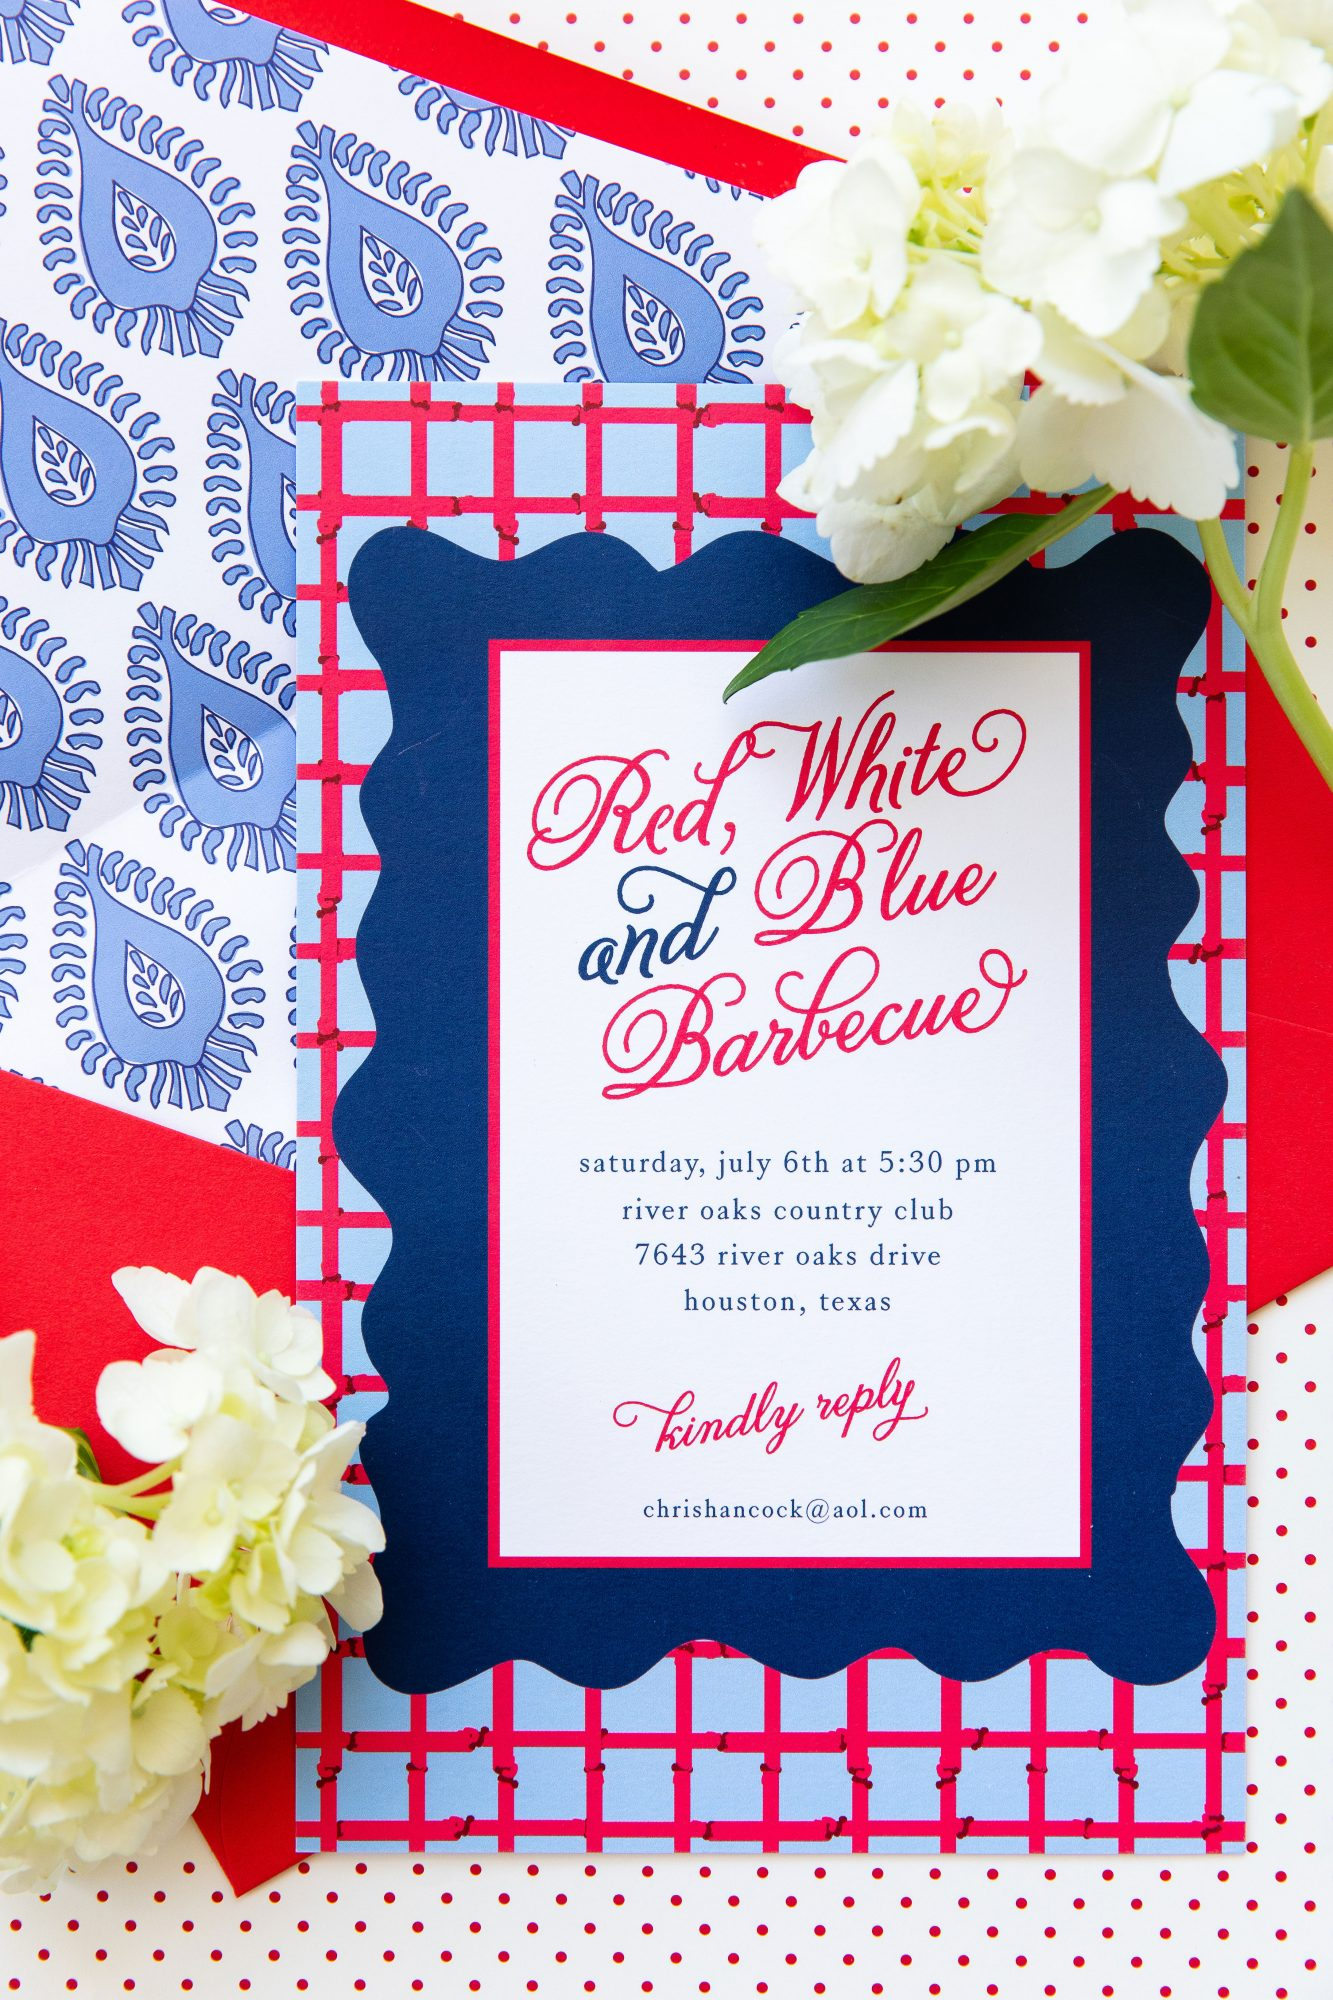 Katie Jacobs and Mary Huddleston 4th of July Cookout Party Invitations